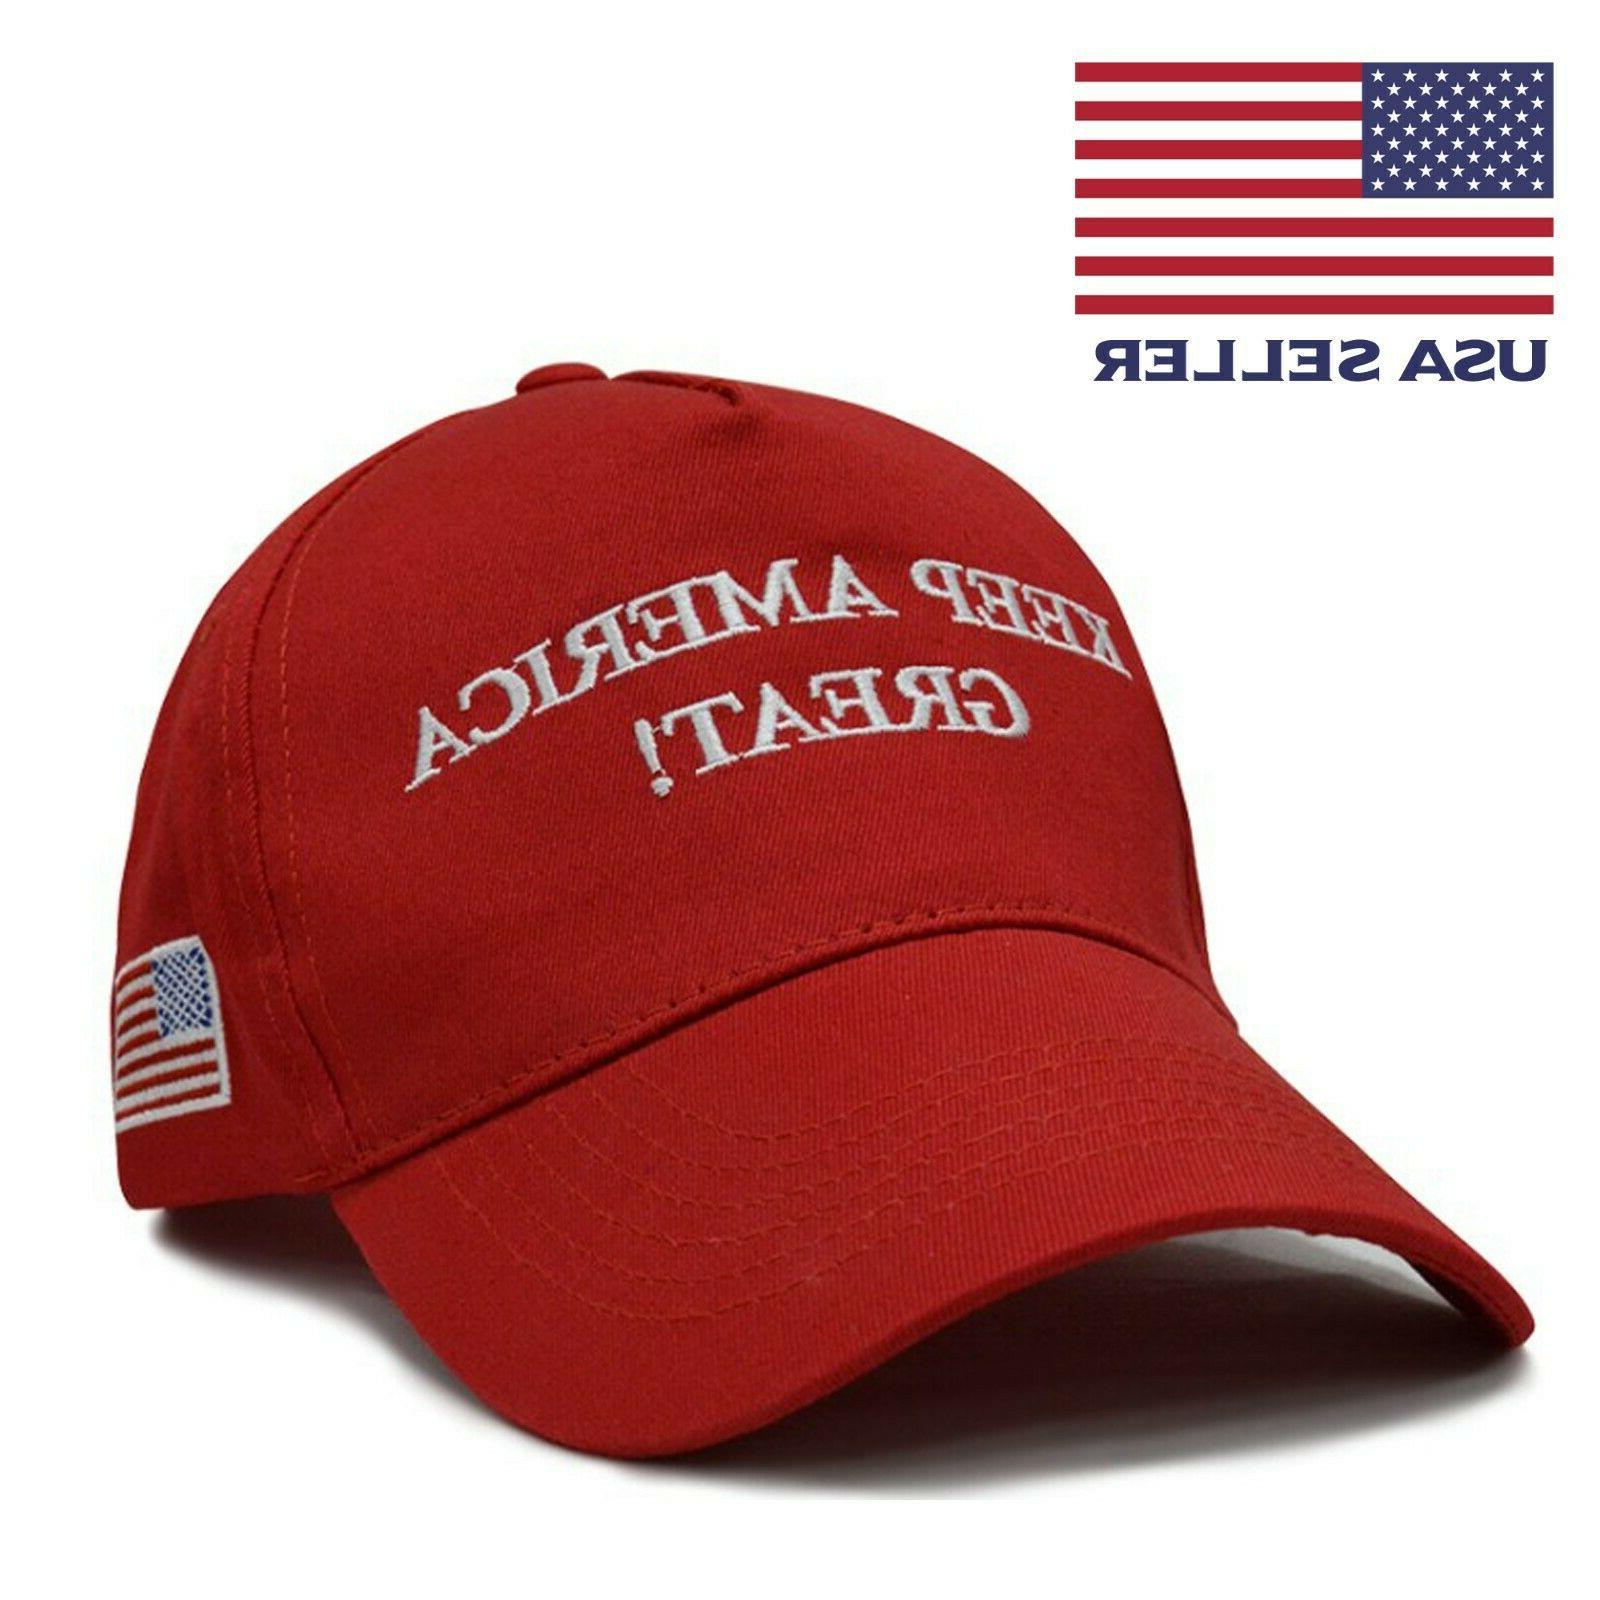 2-Pack Great Again President Trump Hat Red USA